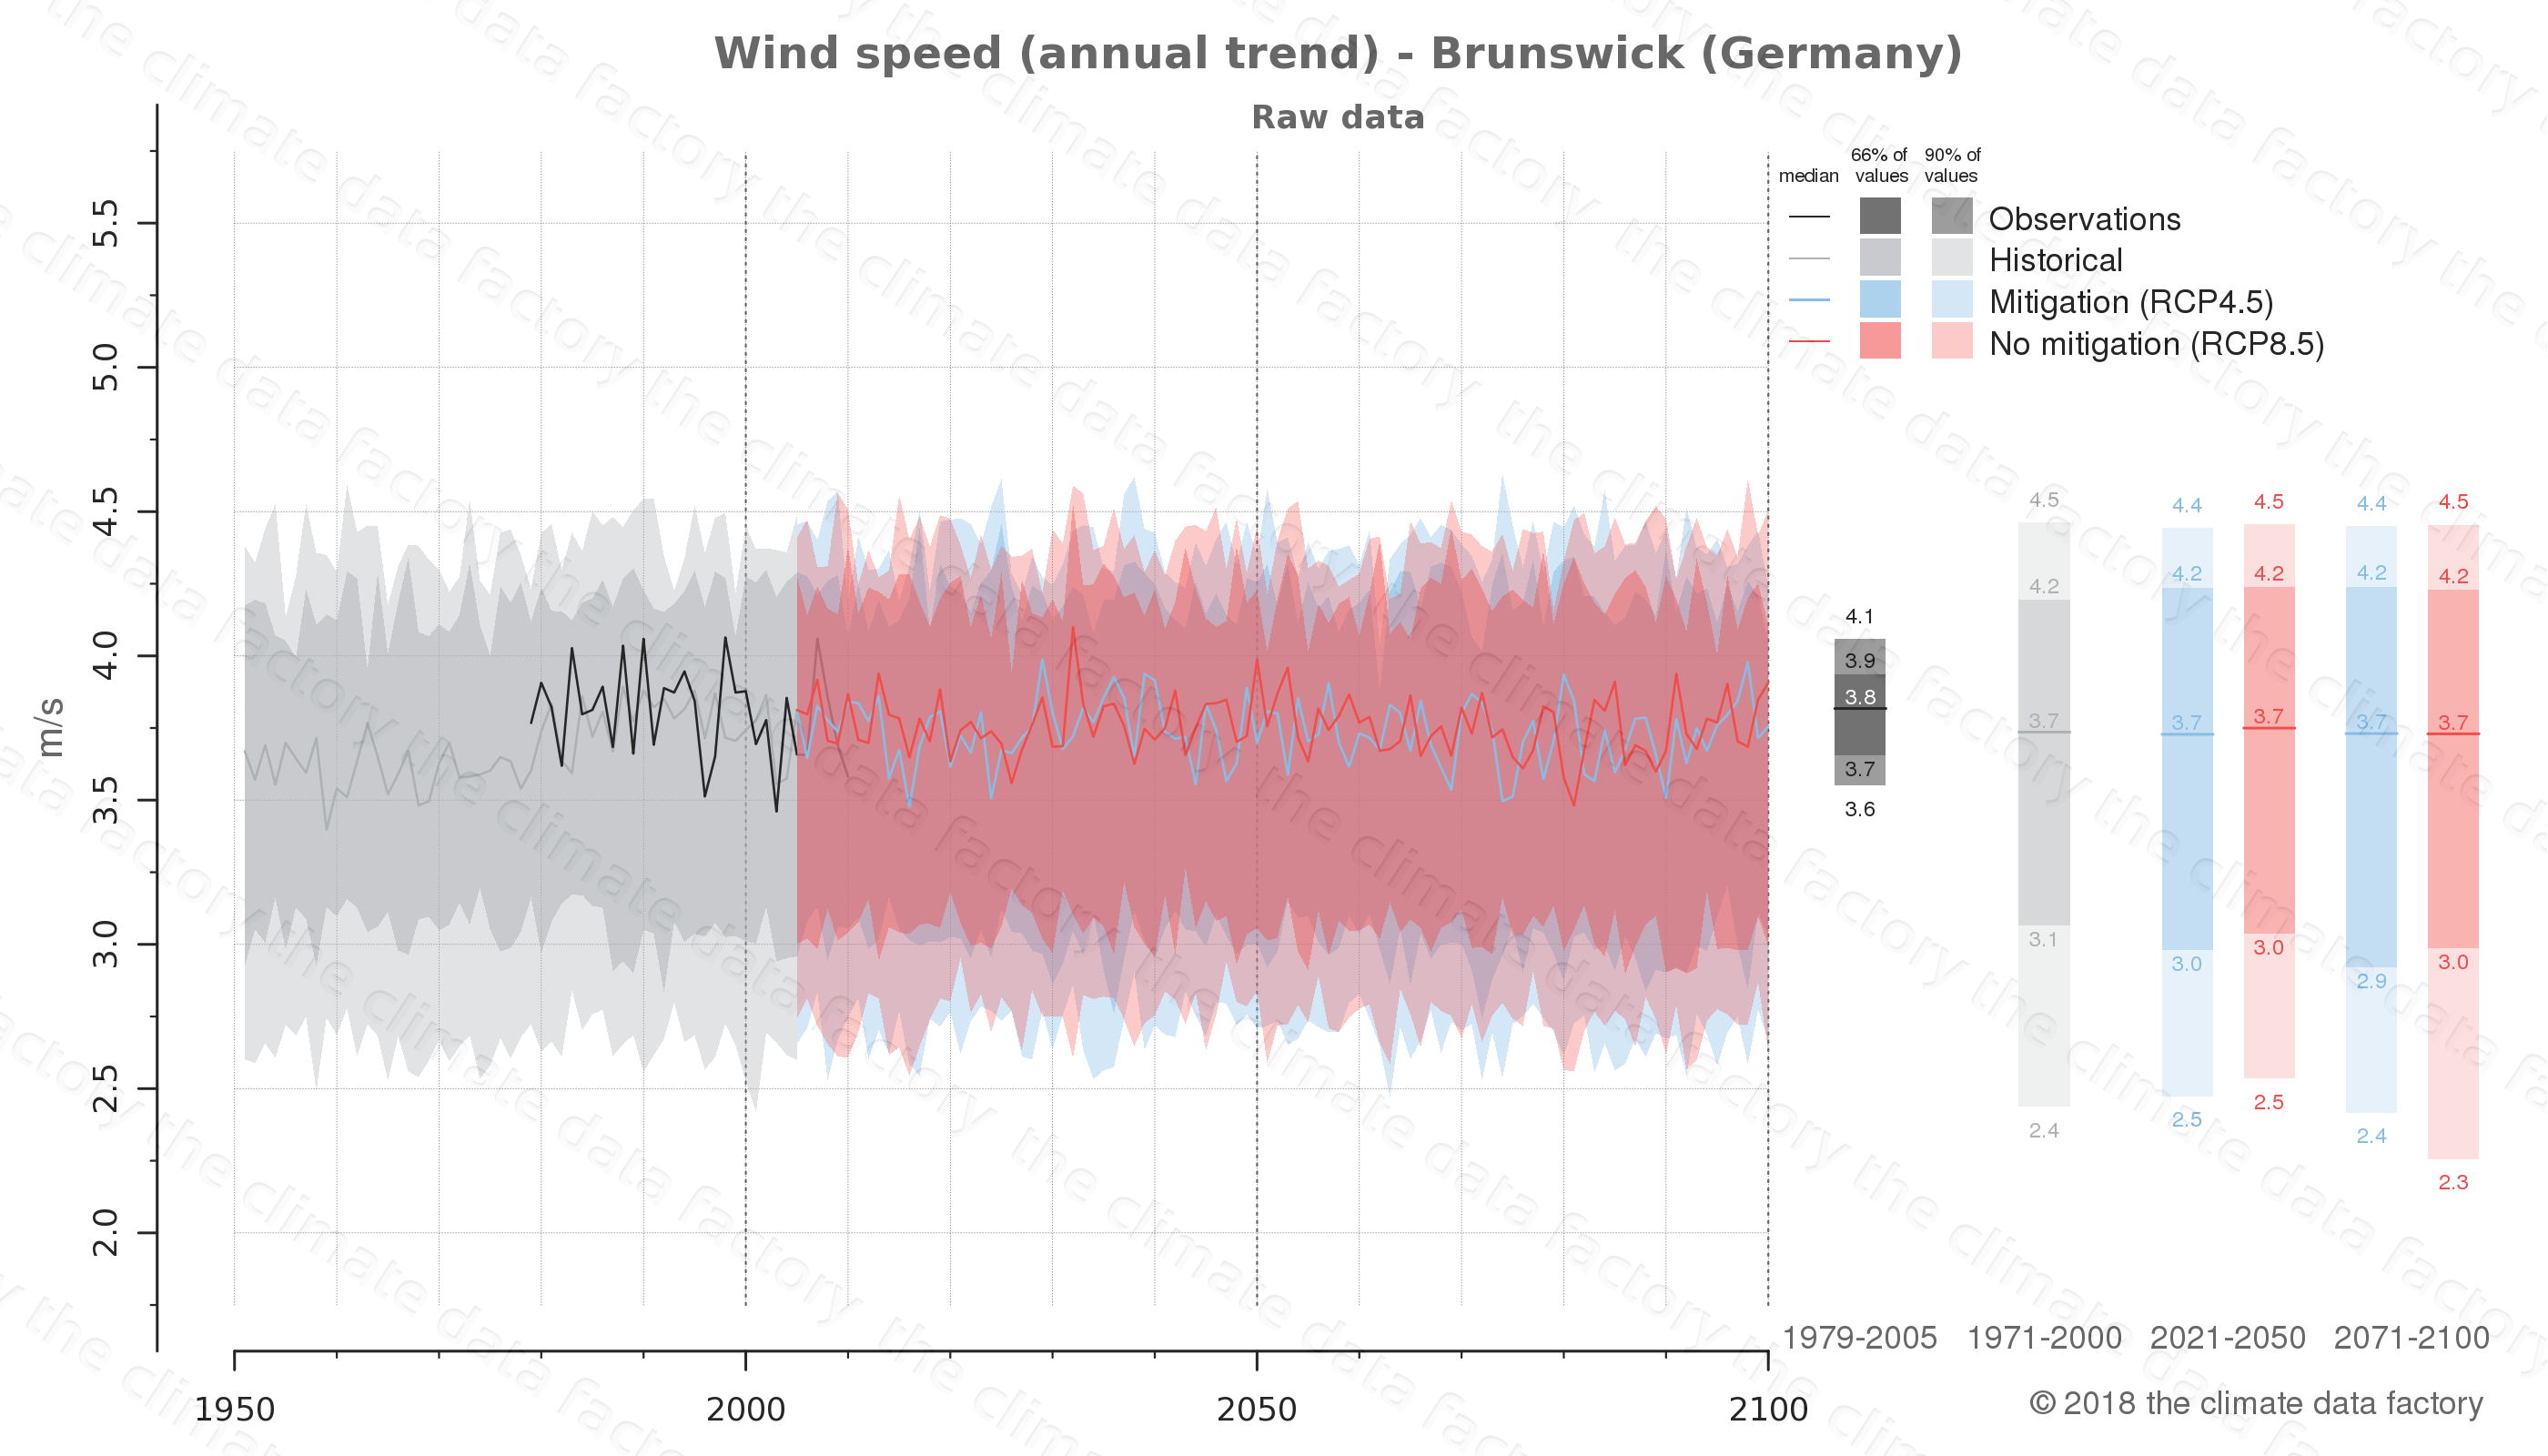 climate change data policy adaptation climate graph city data wind-speed brunswick germany